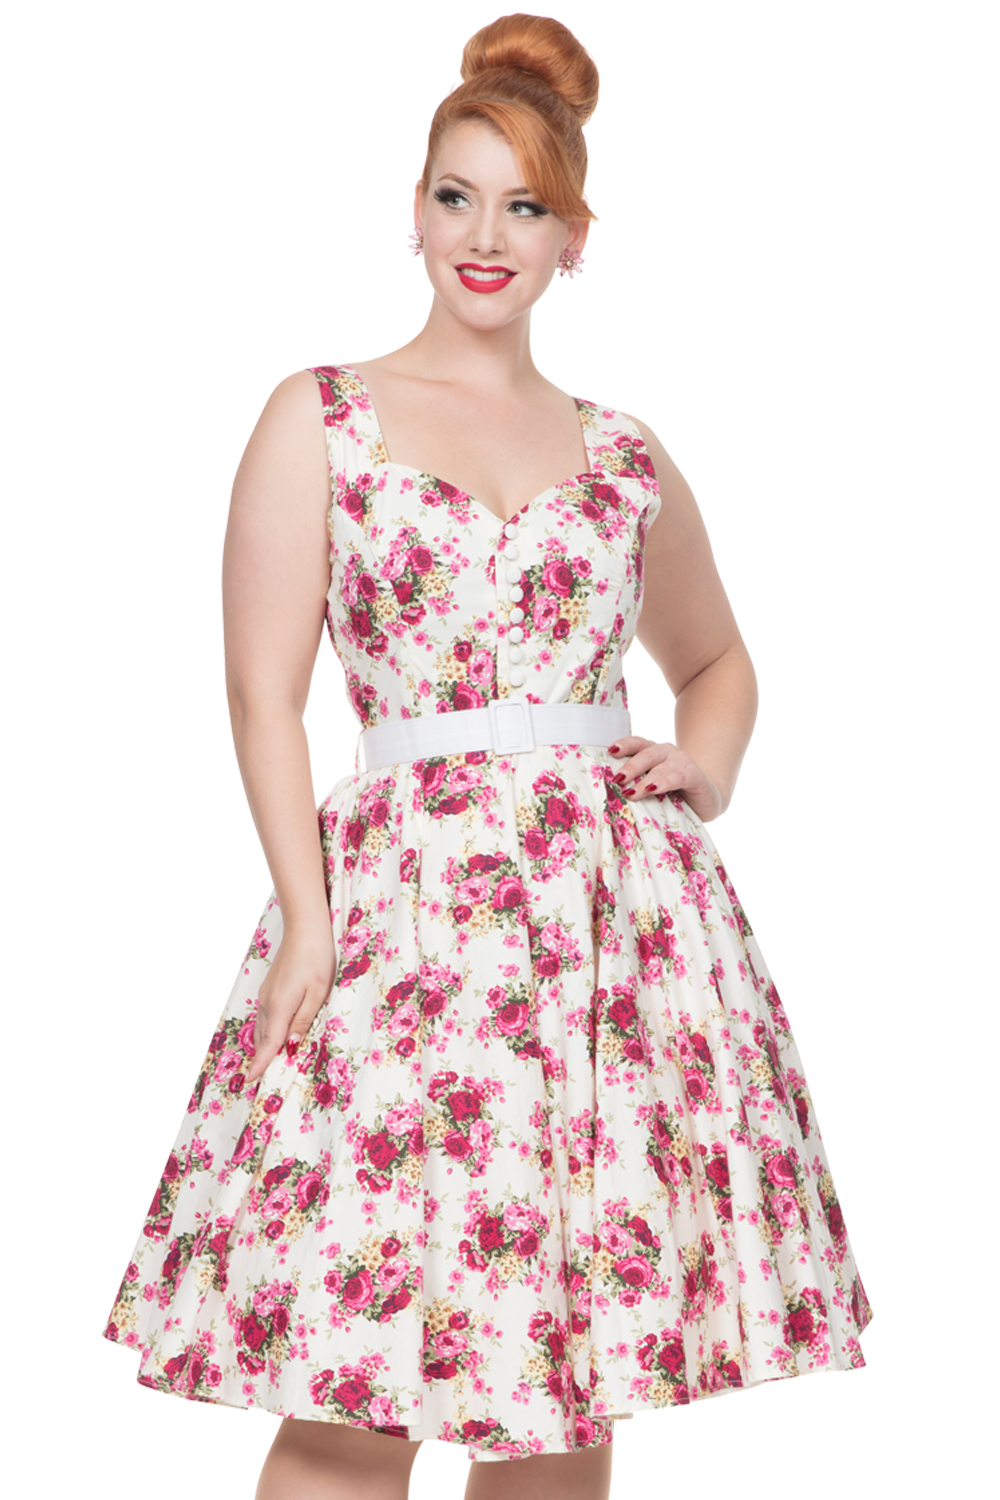 Voodoo Vixen Nicolette 1950s Swing Dress